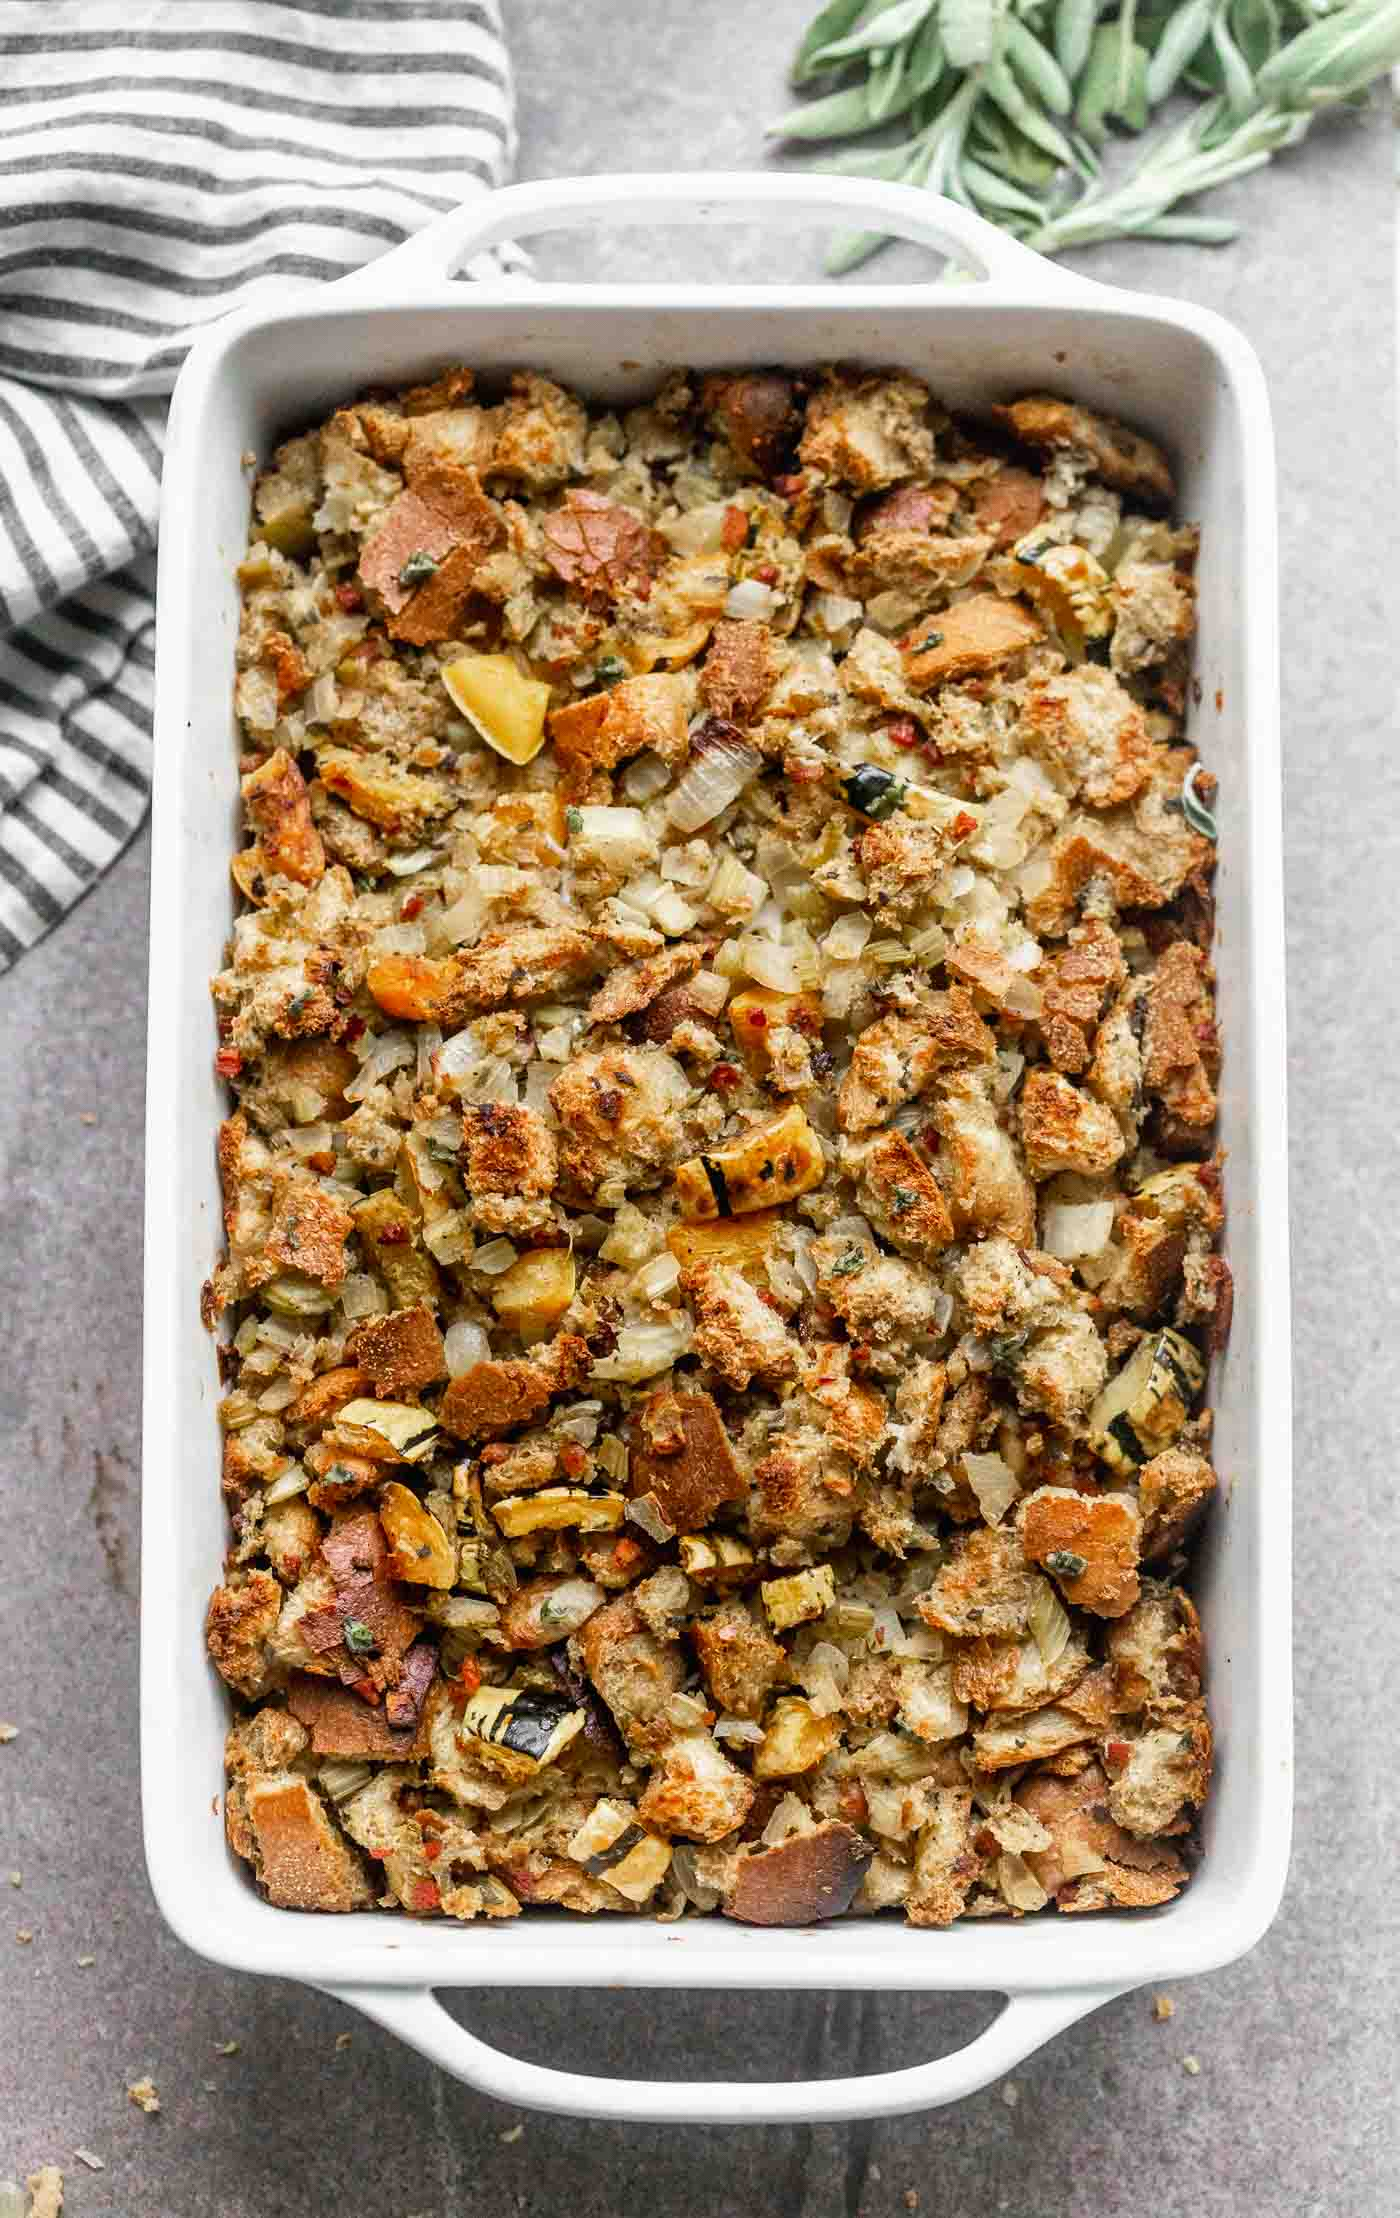 Delicata Squash, Sage and Pancetta Stuffing is a classic stuffing, updated. It has the flavor of the original with the addition of sweet squash, salty pancetta and nutty brown butter. A crowd pleaser for sure!